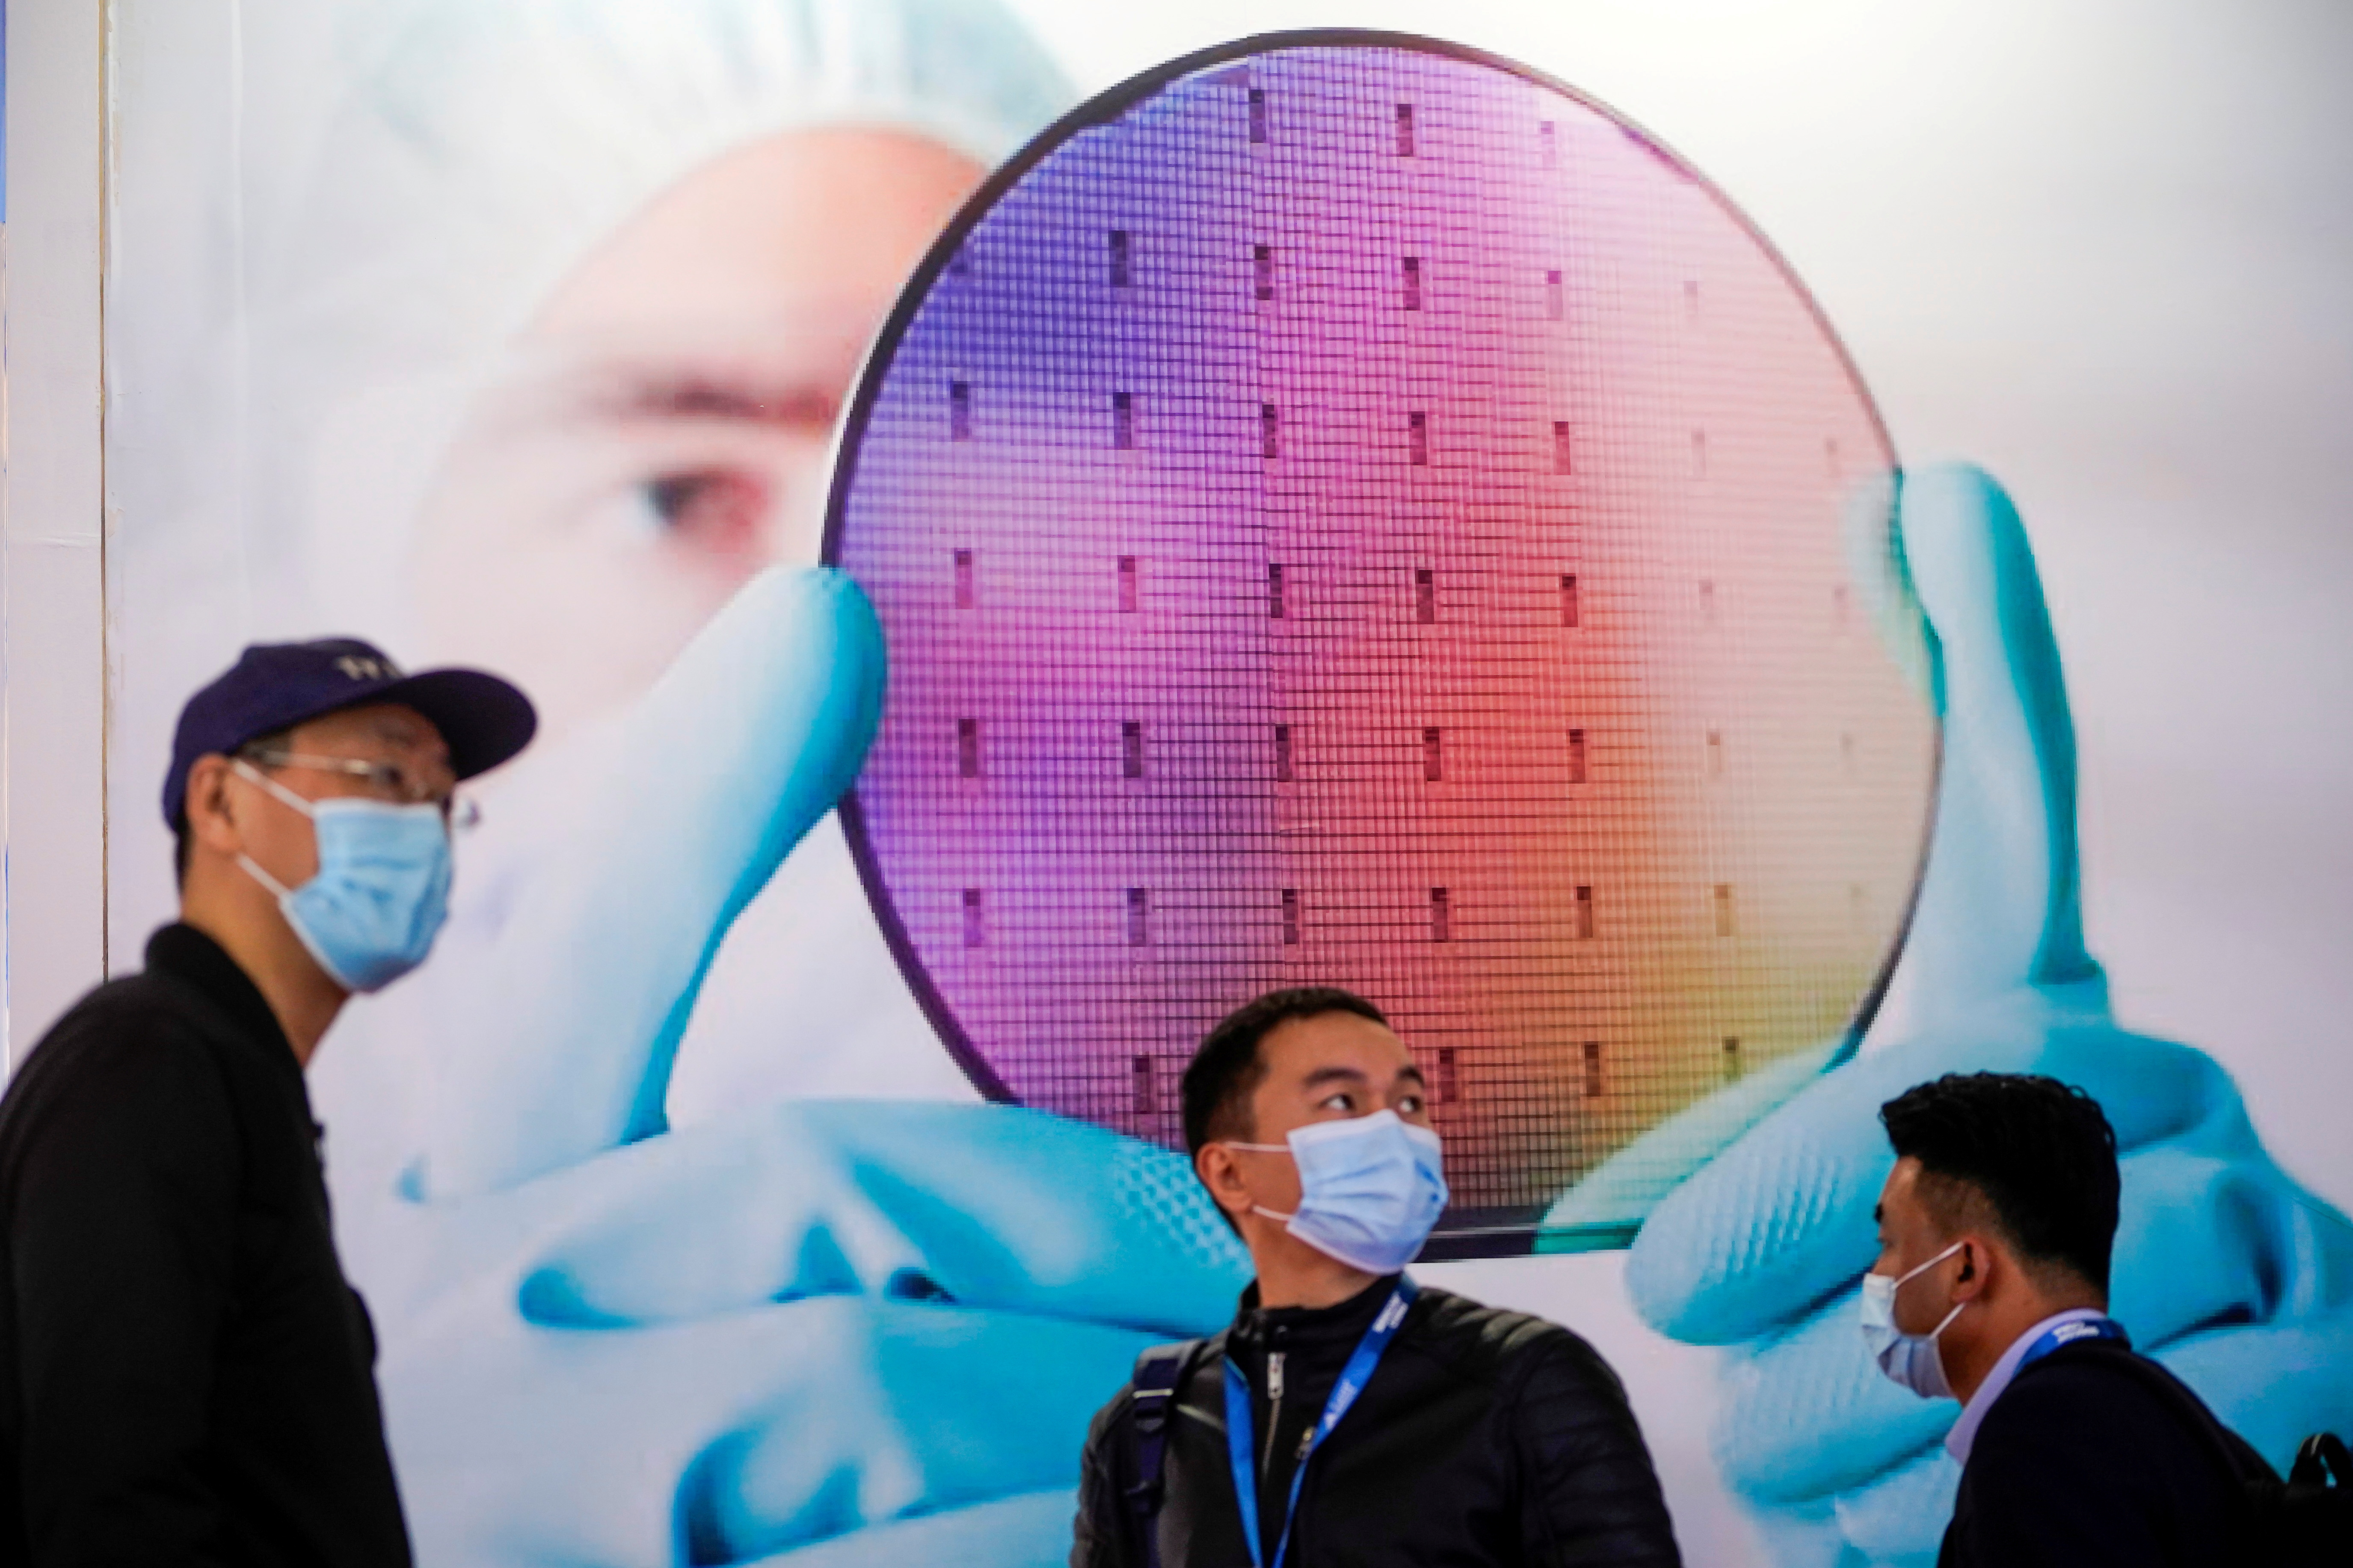 People visit a display of semiconductor device at Semicon China, a trade fair for semiconductor technology, in Shanghai, China March 17, 2021. REUTERS/Aly Song/File Photo